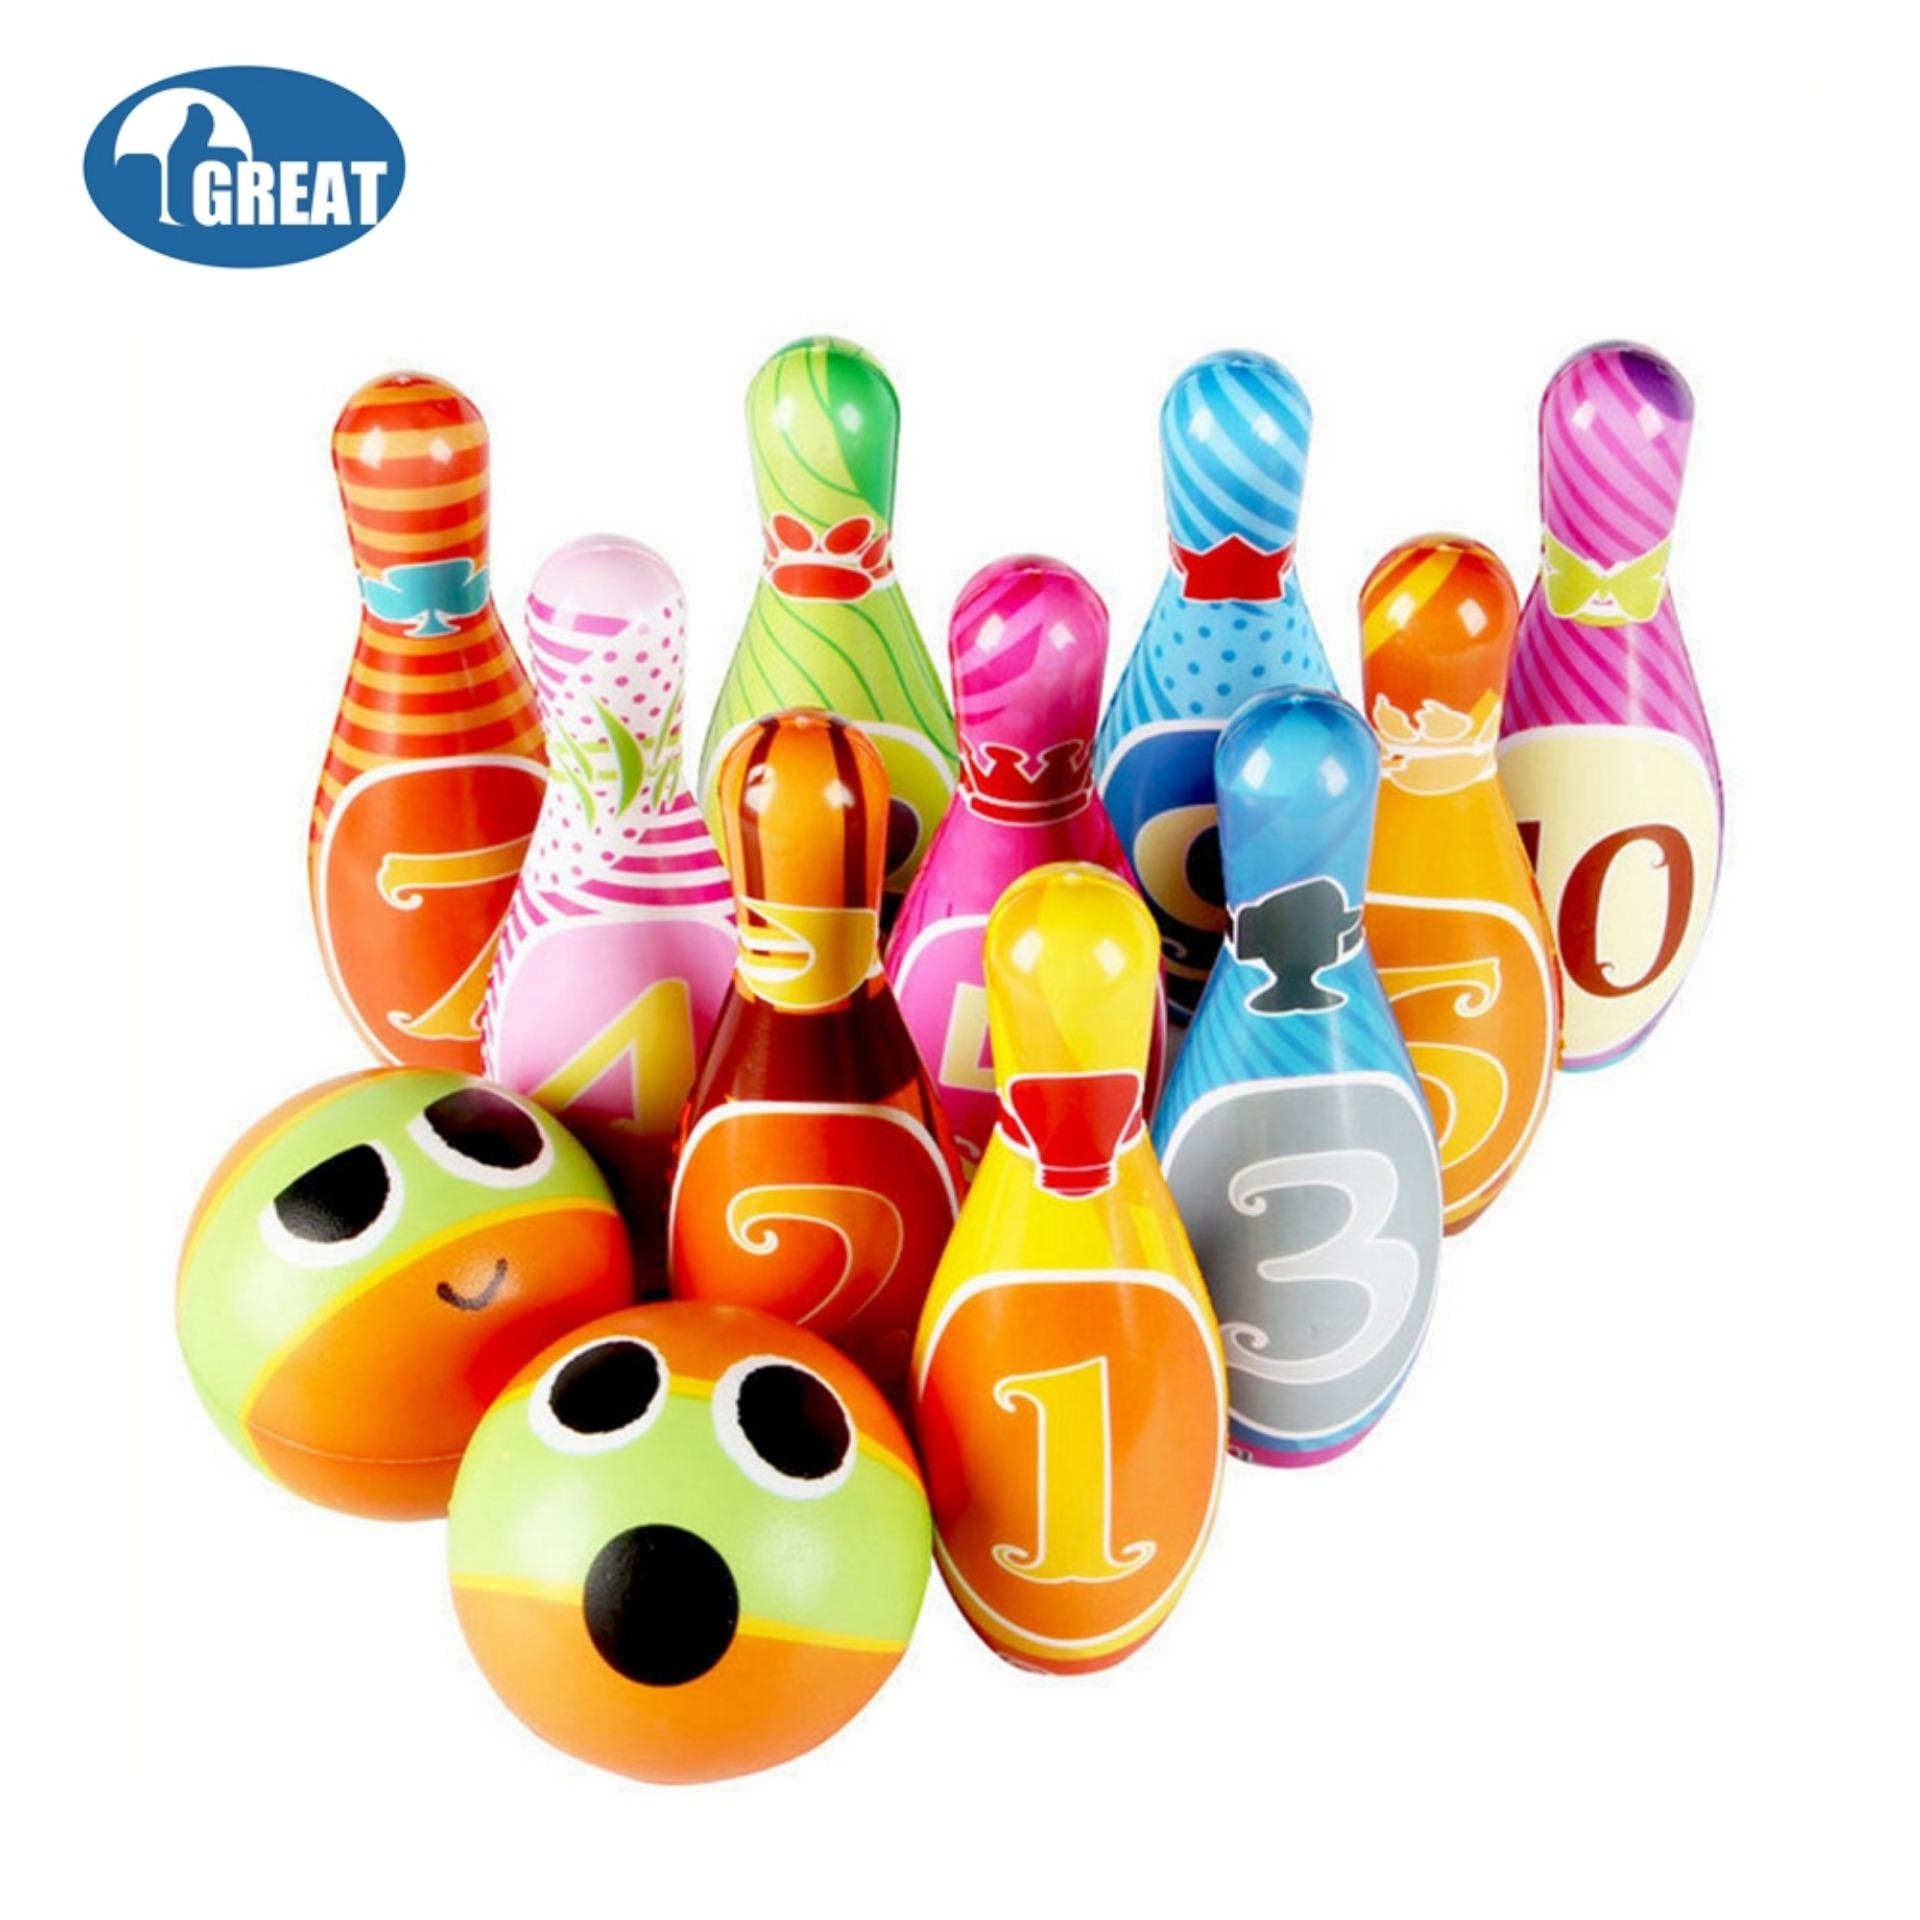 Goodgreat Kids Bowling Play Set, Foam Ball Toy Gifts, Educational, Early Development, Sport, Indoor Toys, 10 Pins And 2 Balls For Ages 2, 3, 4, 5 Year Olds Children, Toddlers, Boys, Girls - Intl By Good&great.